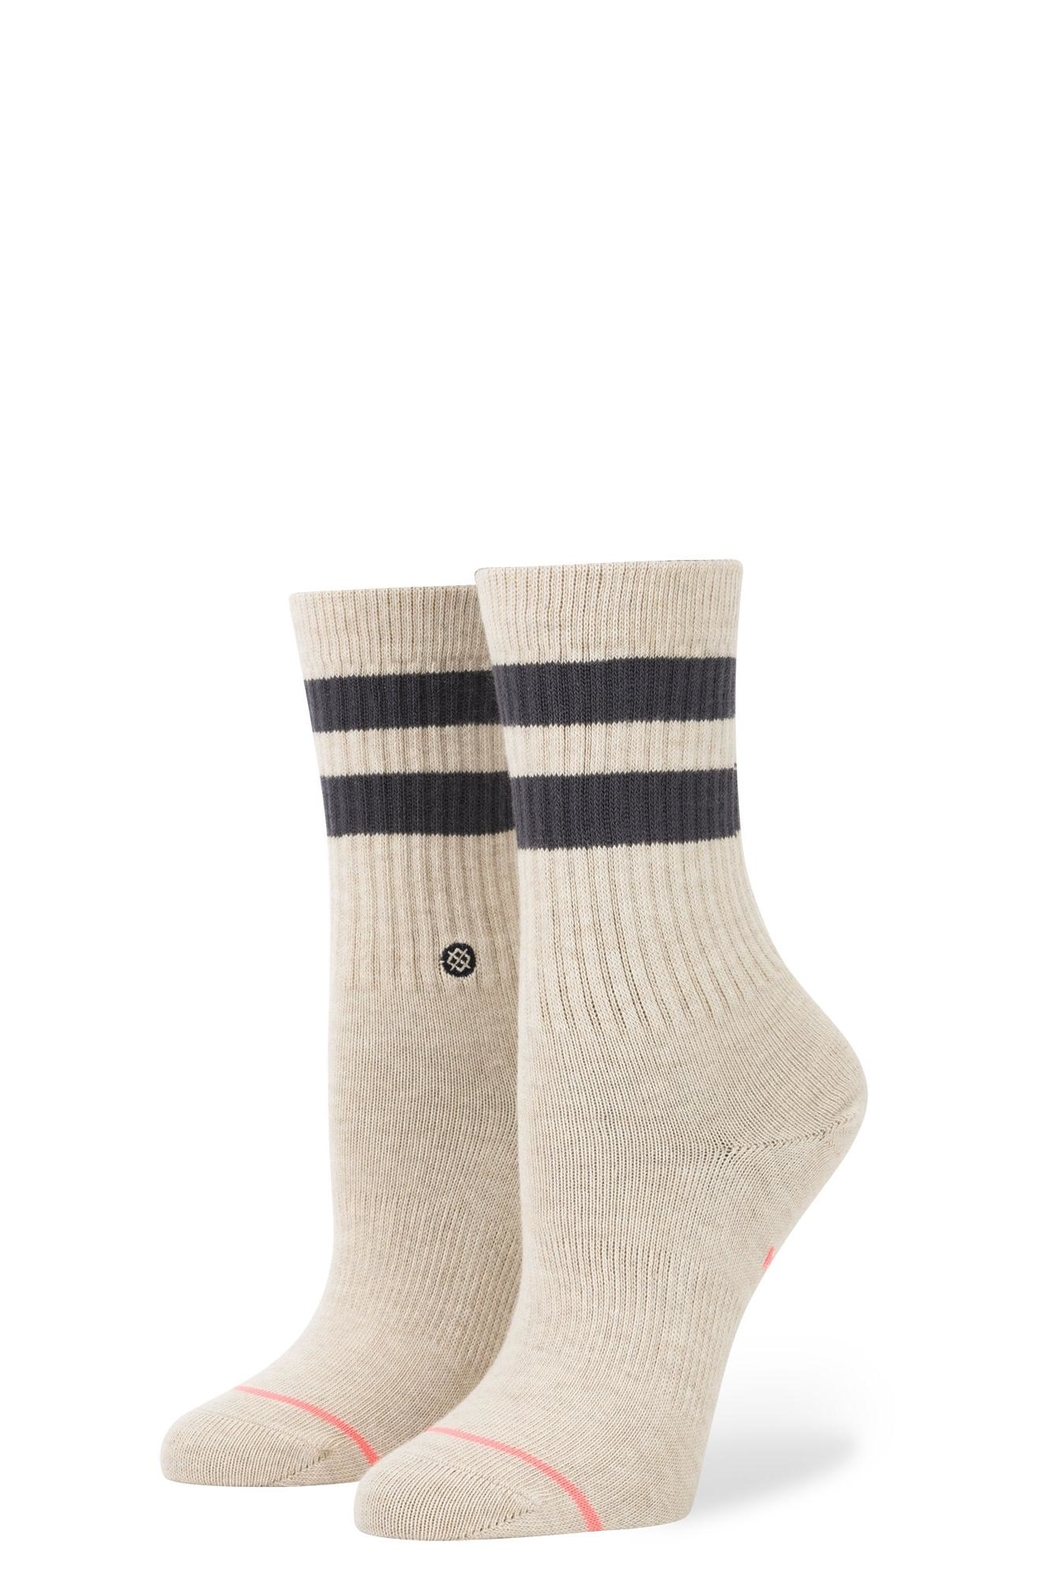 Stance Harmony Girls Socks - Main Image